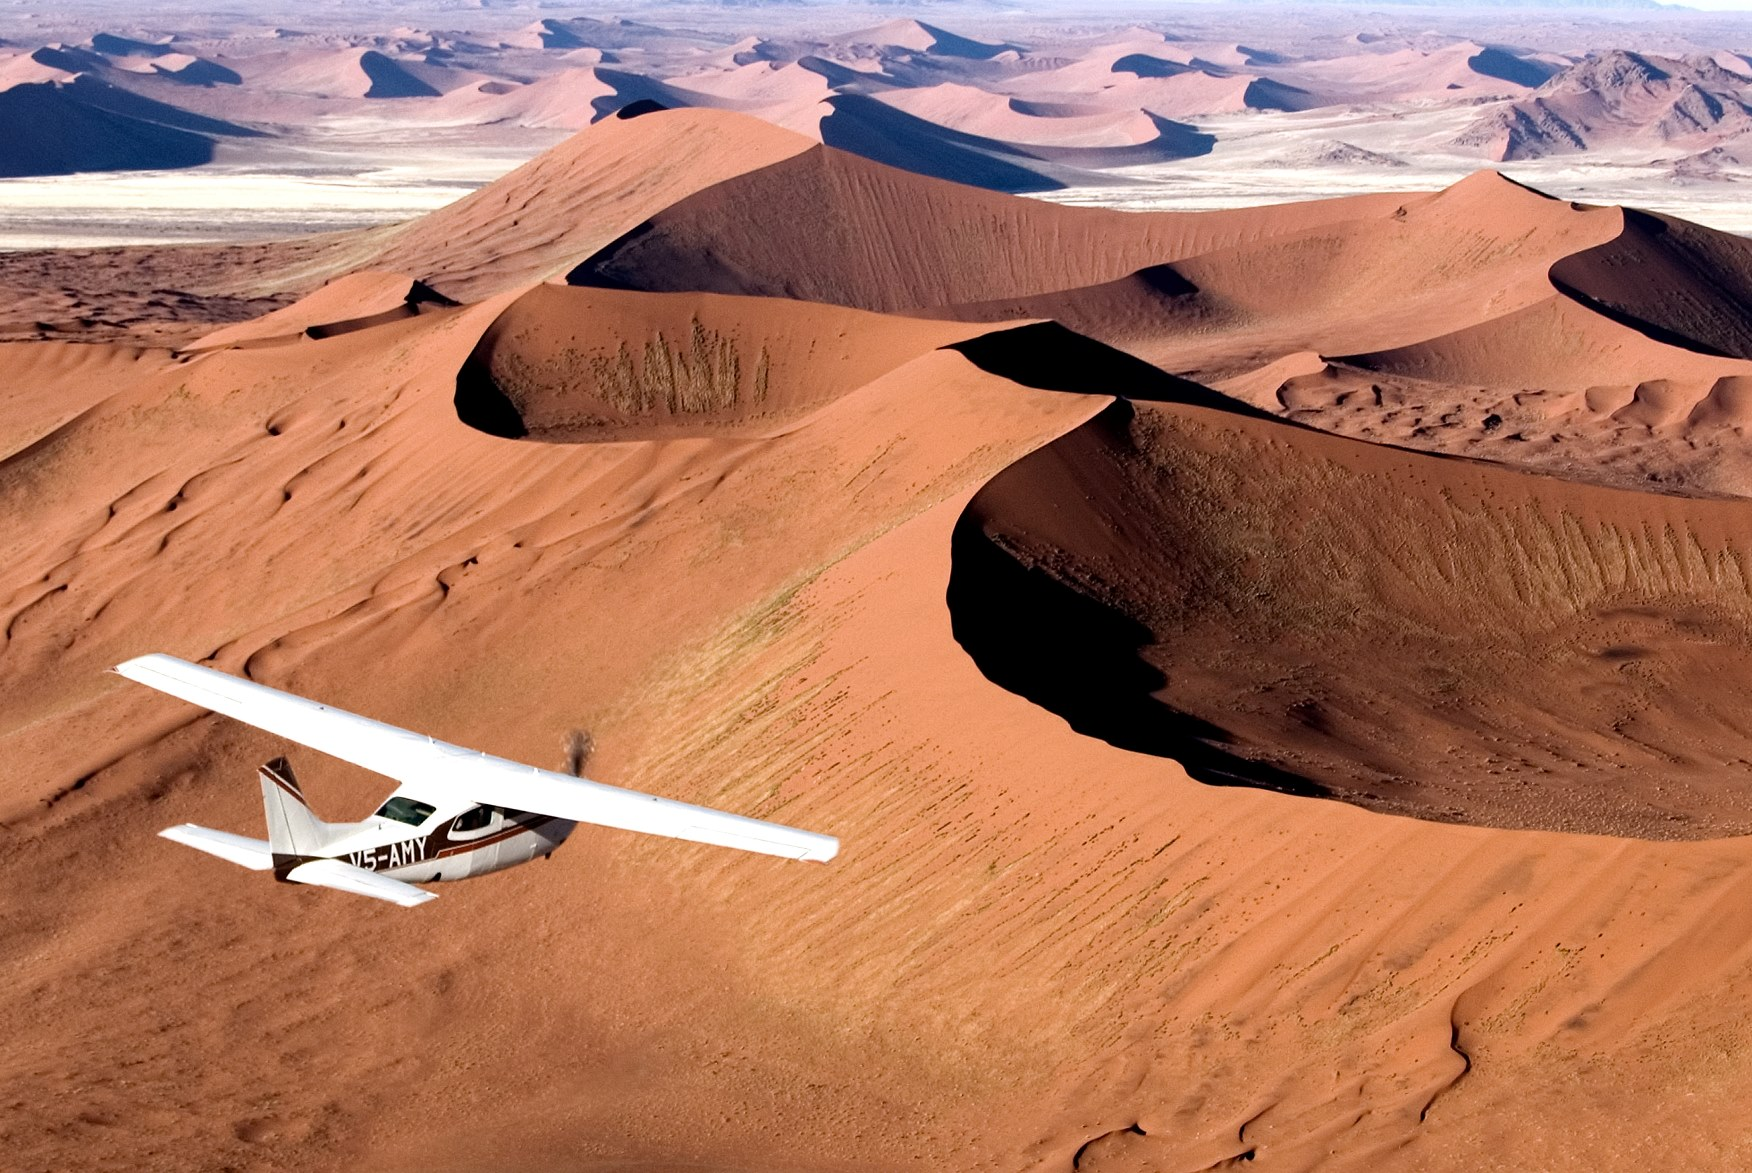 A flying safari in Namibia